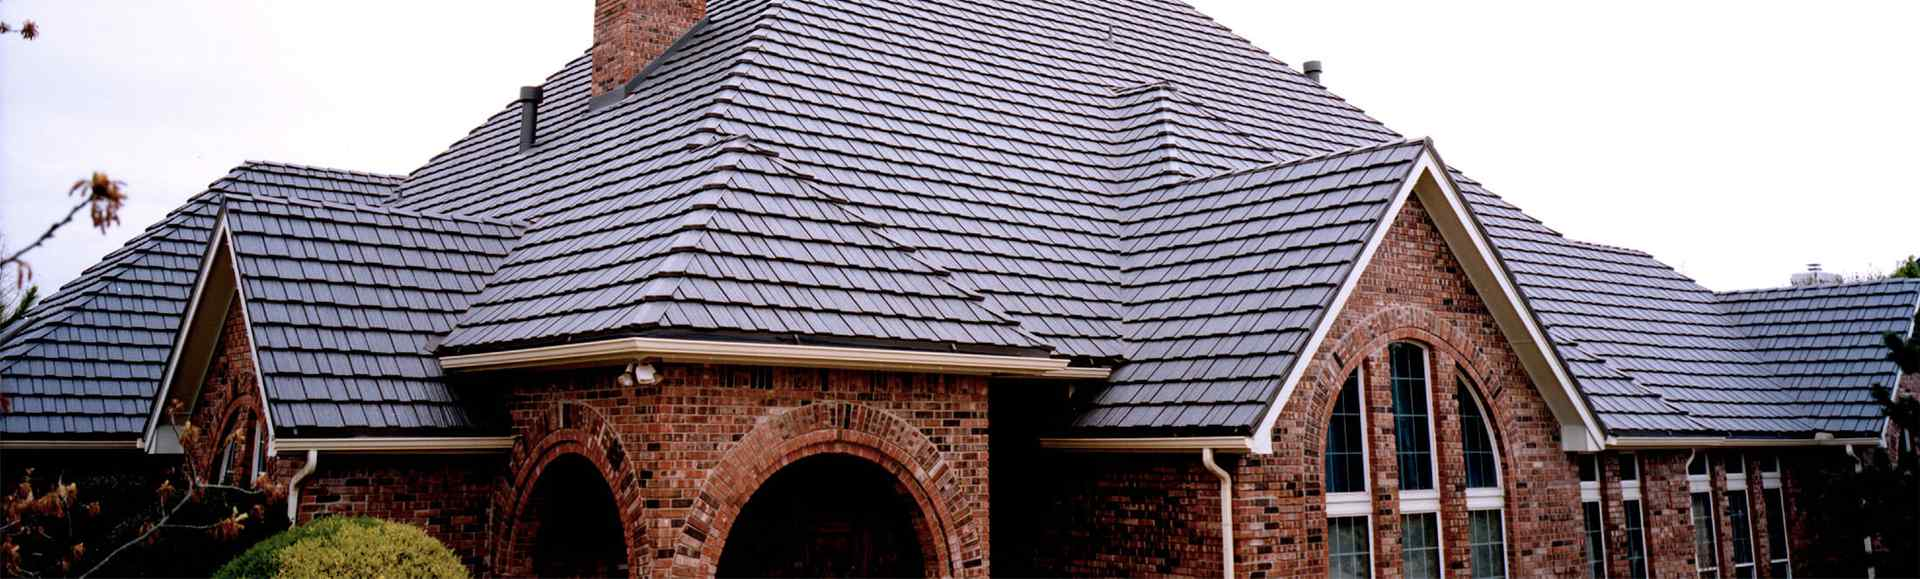 Metal Roofing Visualizer See Your Home With New Metal